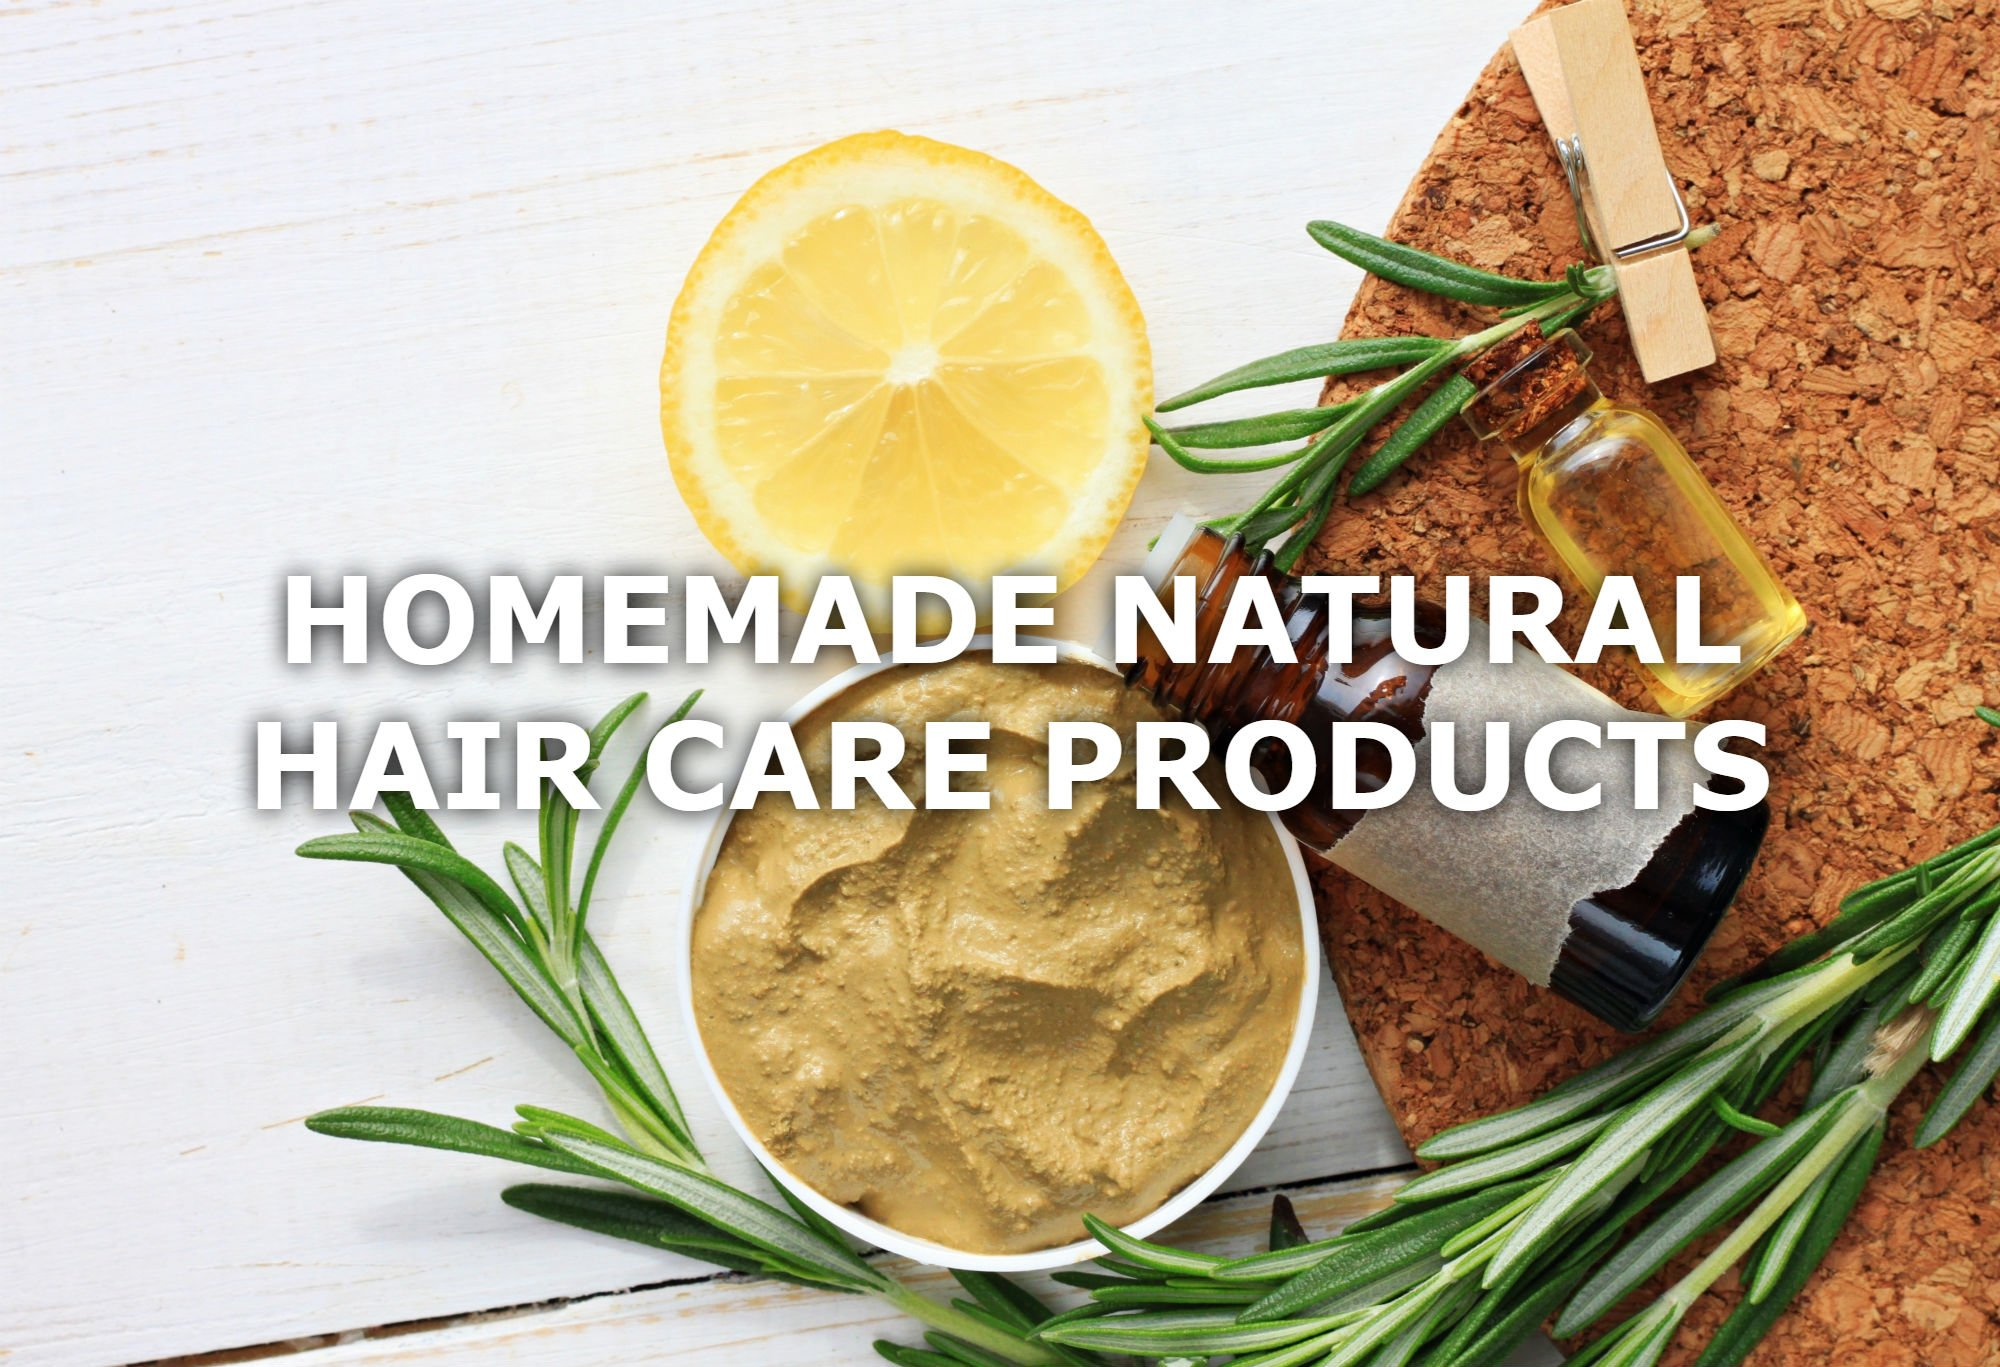 DIY: NATURAL HAIR CARE PRODUCTS